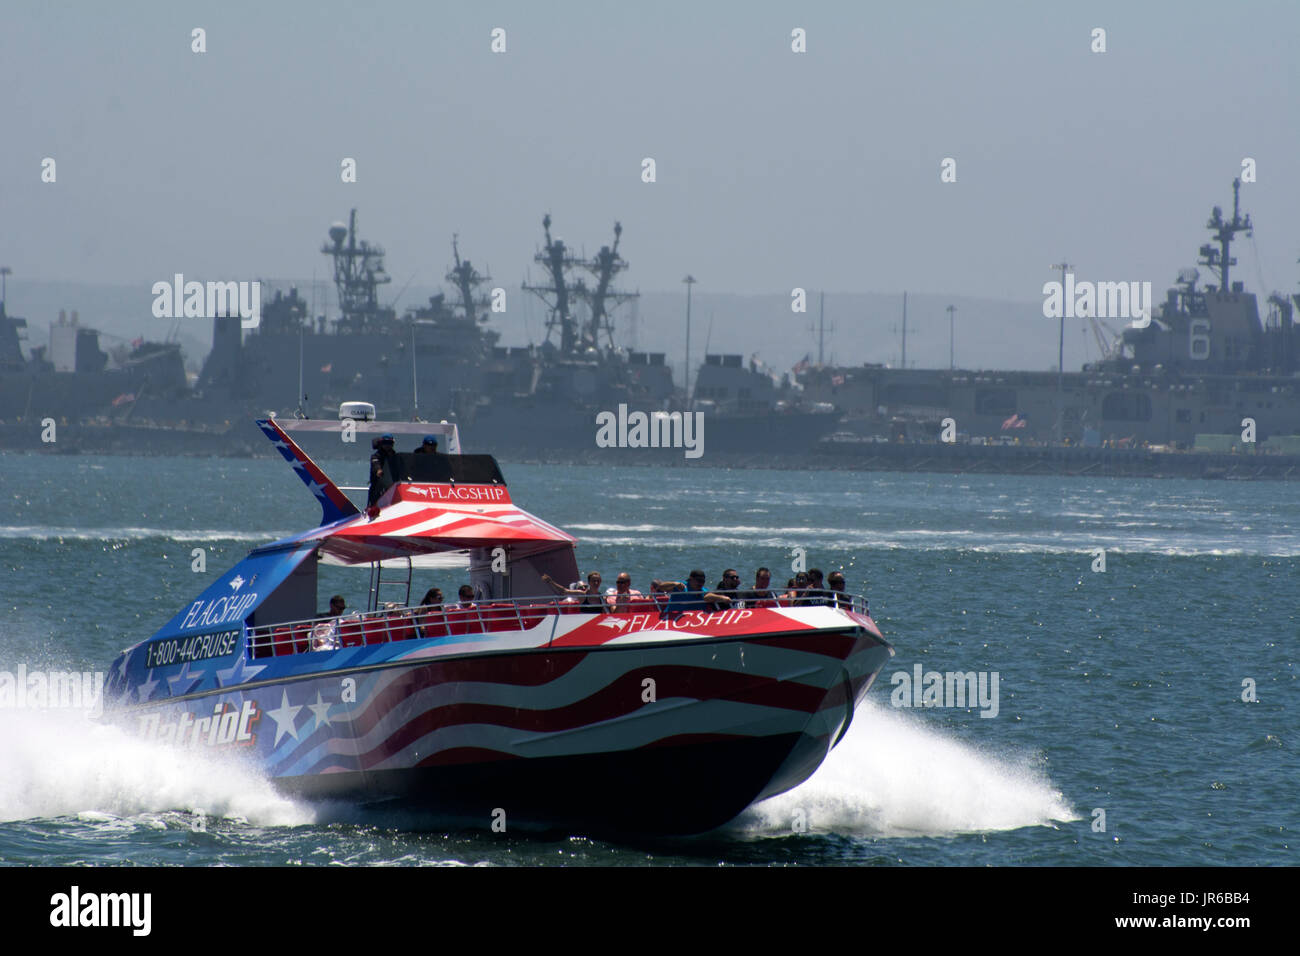 The Patriot Jet Boat owned by Flagship Cruises in San Diego Bay, California - Stock Image